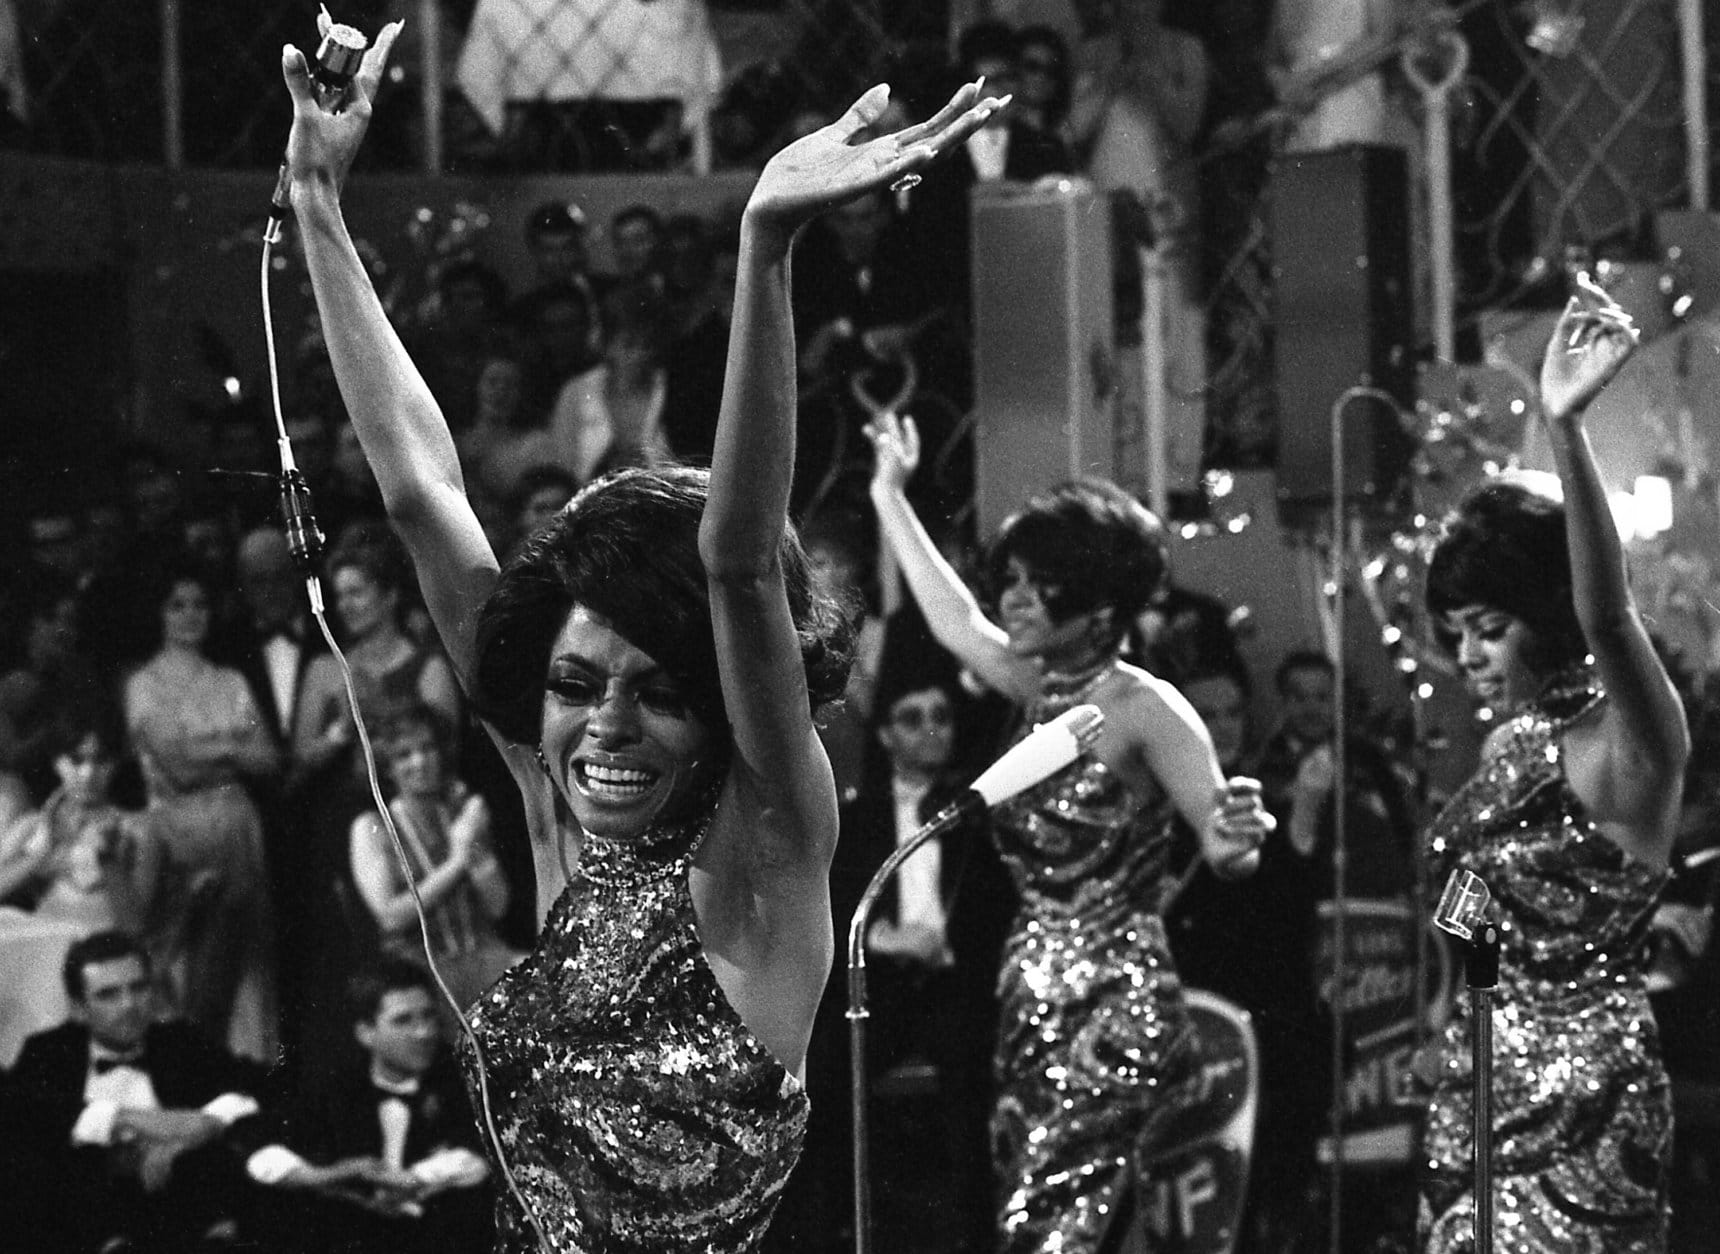 """FILE -In this Jan. 21, 1968 file photo, The Supremes with Diana Ross, front, Cindy Birdsong and Mary Wilson dance with their arms in the air as they perform at the annual """"Bal pare"""" party in Munich, West Germany. Ross, Wilson and the Florence Ballard made up the first successful configuration of the group. Cindy Birdsong replaced Ballard in 1967. Wilson, now 70, reminisced in an interview with Associated Press on June 12, 2014, about a major milestone: the 50th anniversary of the Supremes first No. 1, million-selling song, """"Where Did Our Love Go"""" - released June 17, 1964.  (AP Photo/Klaus Frings, file)"""